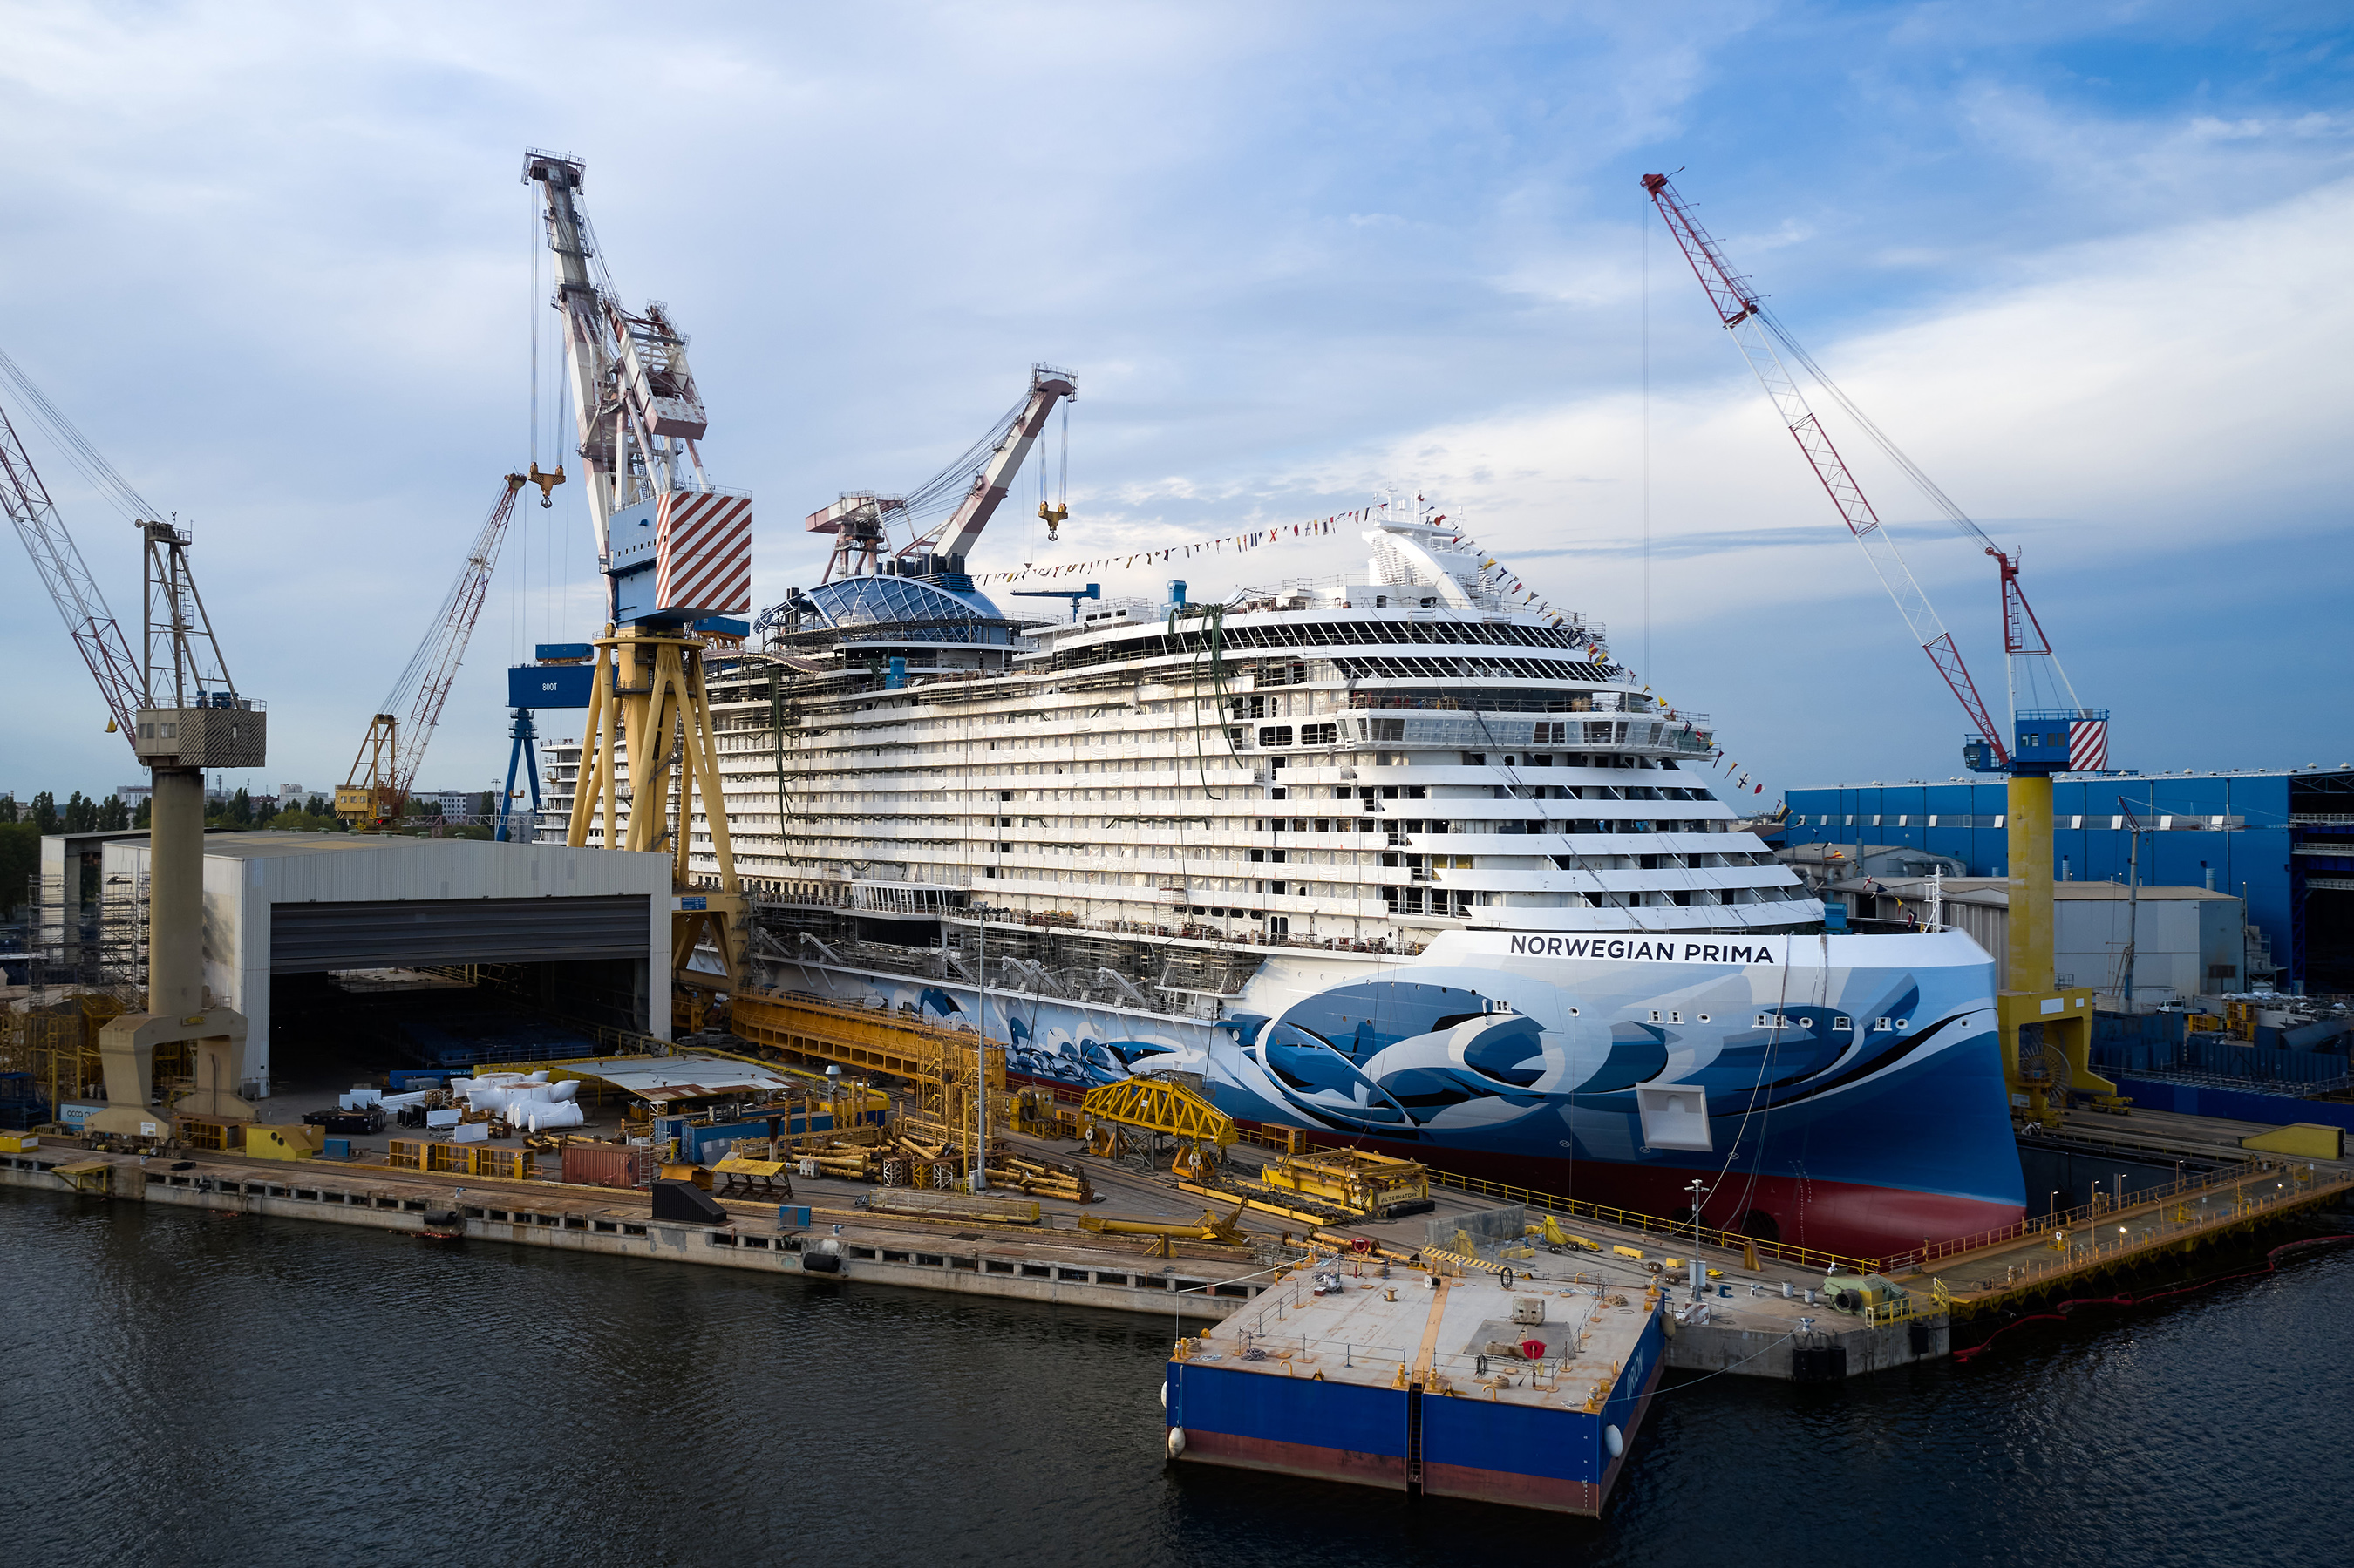 Norwegian Prima, the first of six ships within NCL's all new Prima Class, floats out from her dry dock at Fincantieri shipyard in Marghera, Italy, on Aug. 11, 2021, marking a major construction milestone and the first time the new vessel touches water. Photo by ©Filippo Vinardi